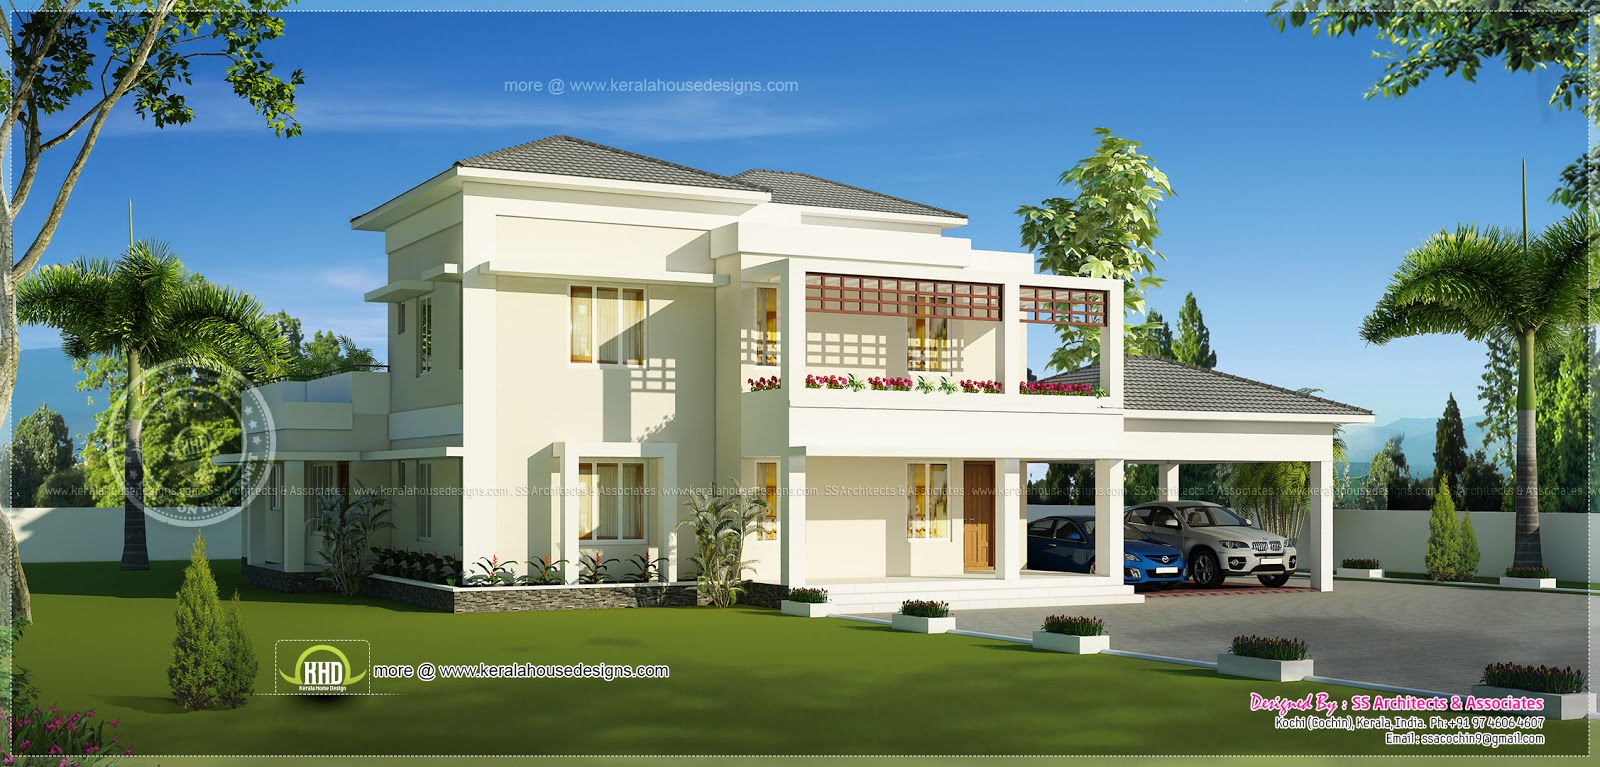 Beautiful double storey modern villa exterior kerala for Exterior design of 2 storey house